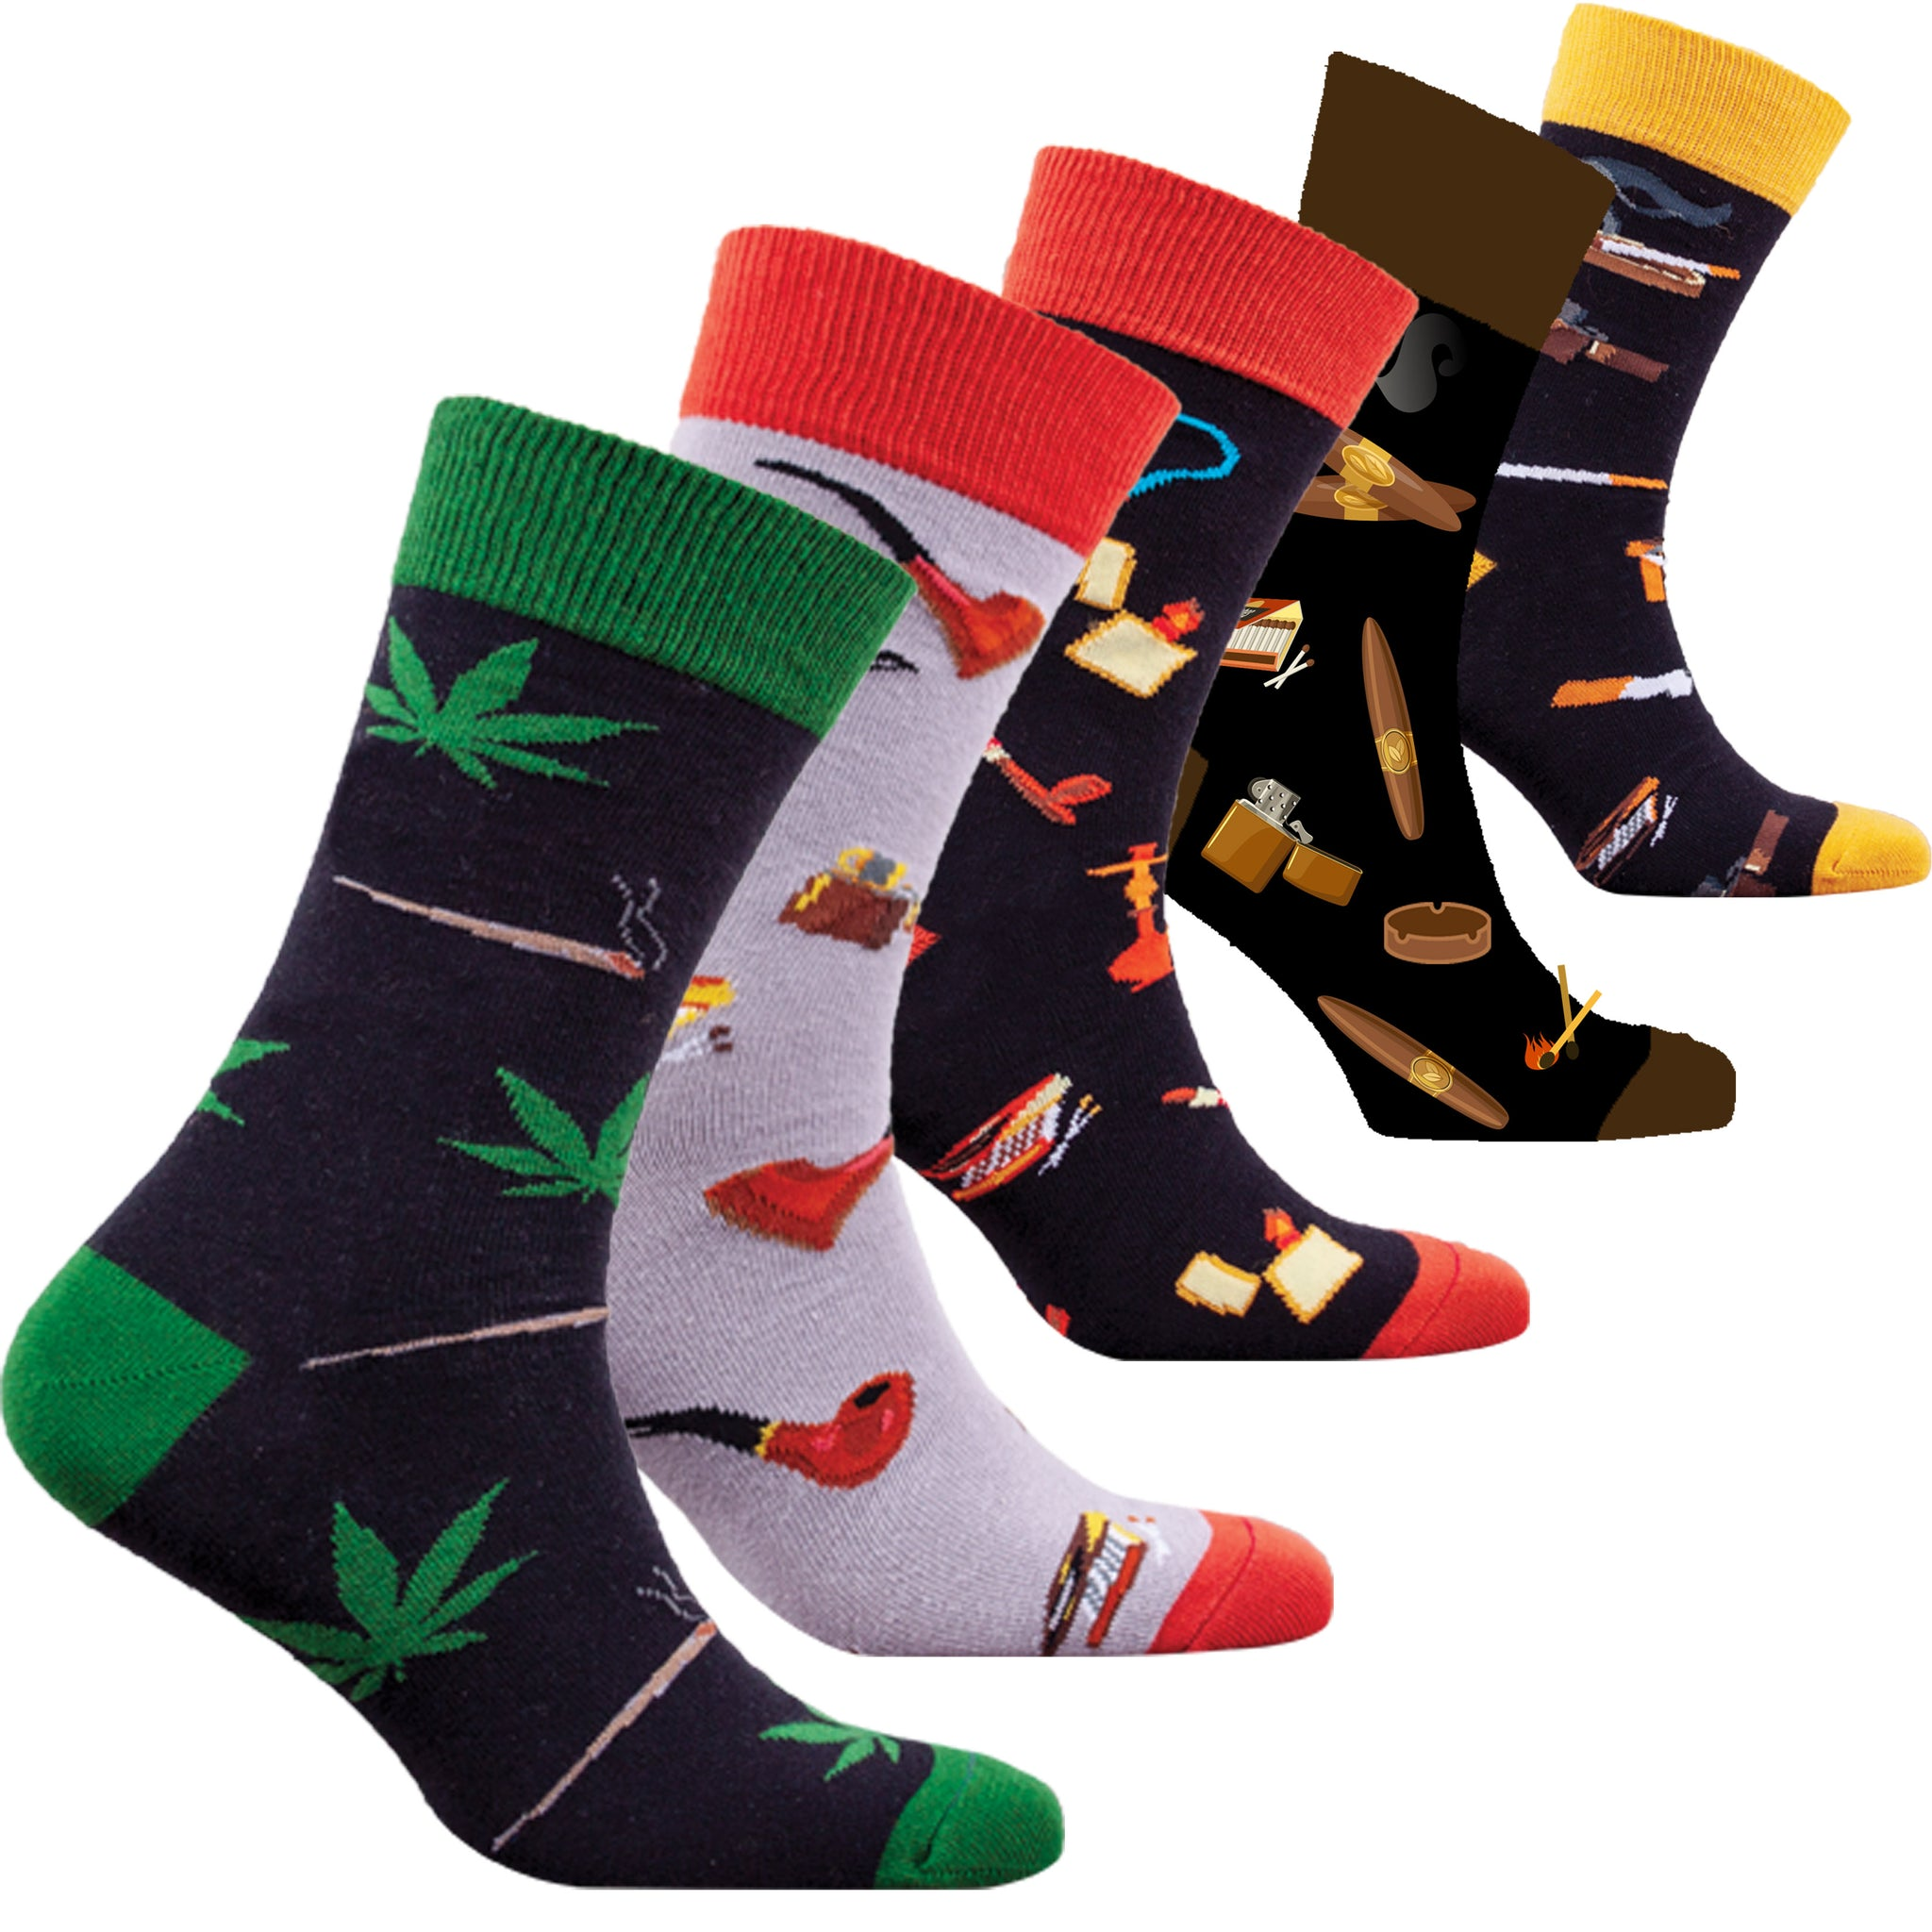 Tobacco Socks